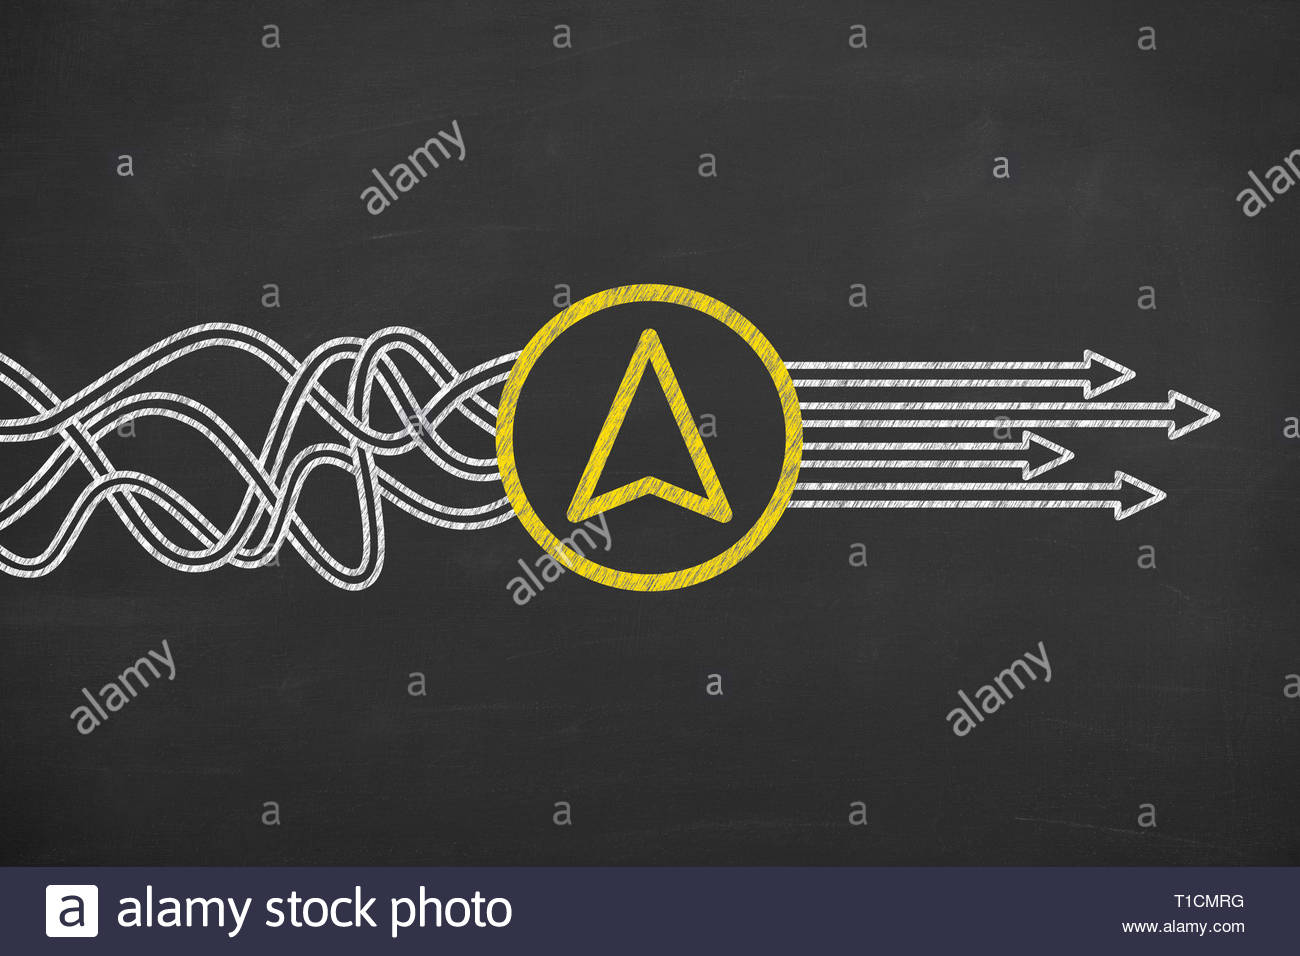 Direction Solution Concepts on Chalkboard Background - Stock Image